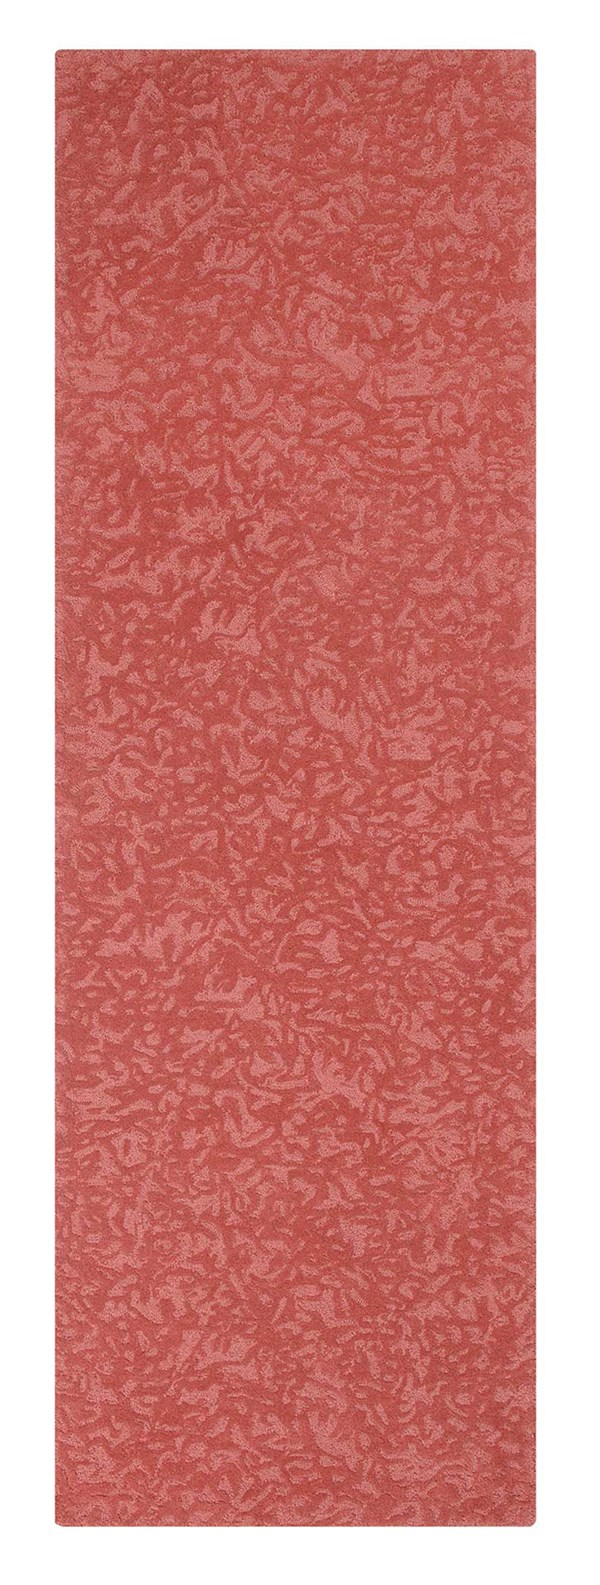 Newport Red (10310) Textured Solid Area Rug